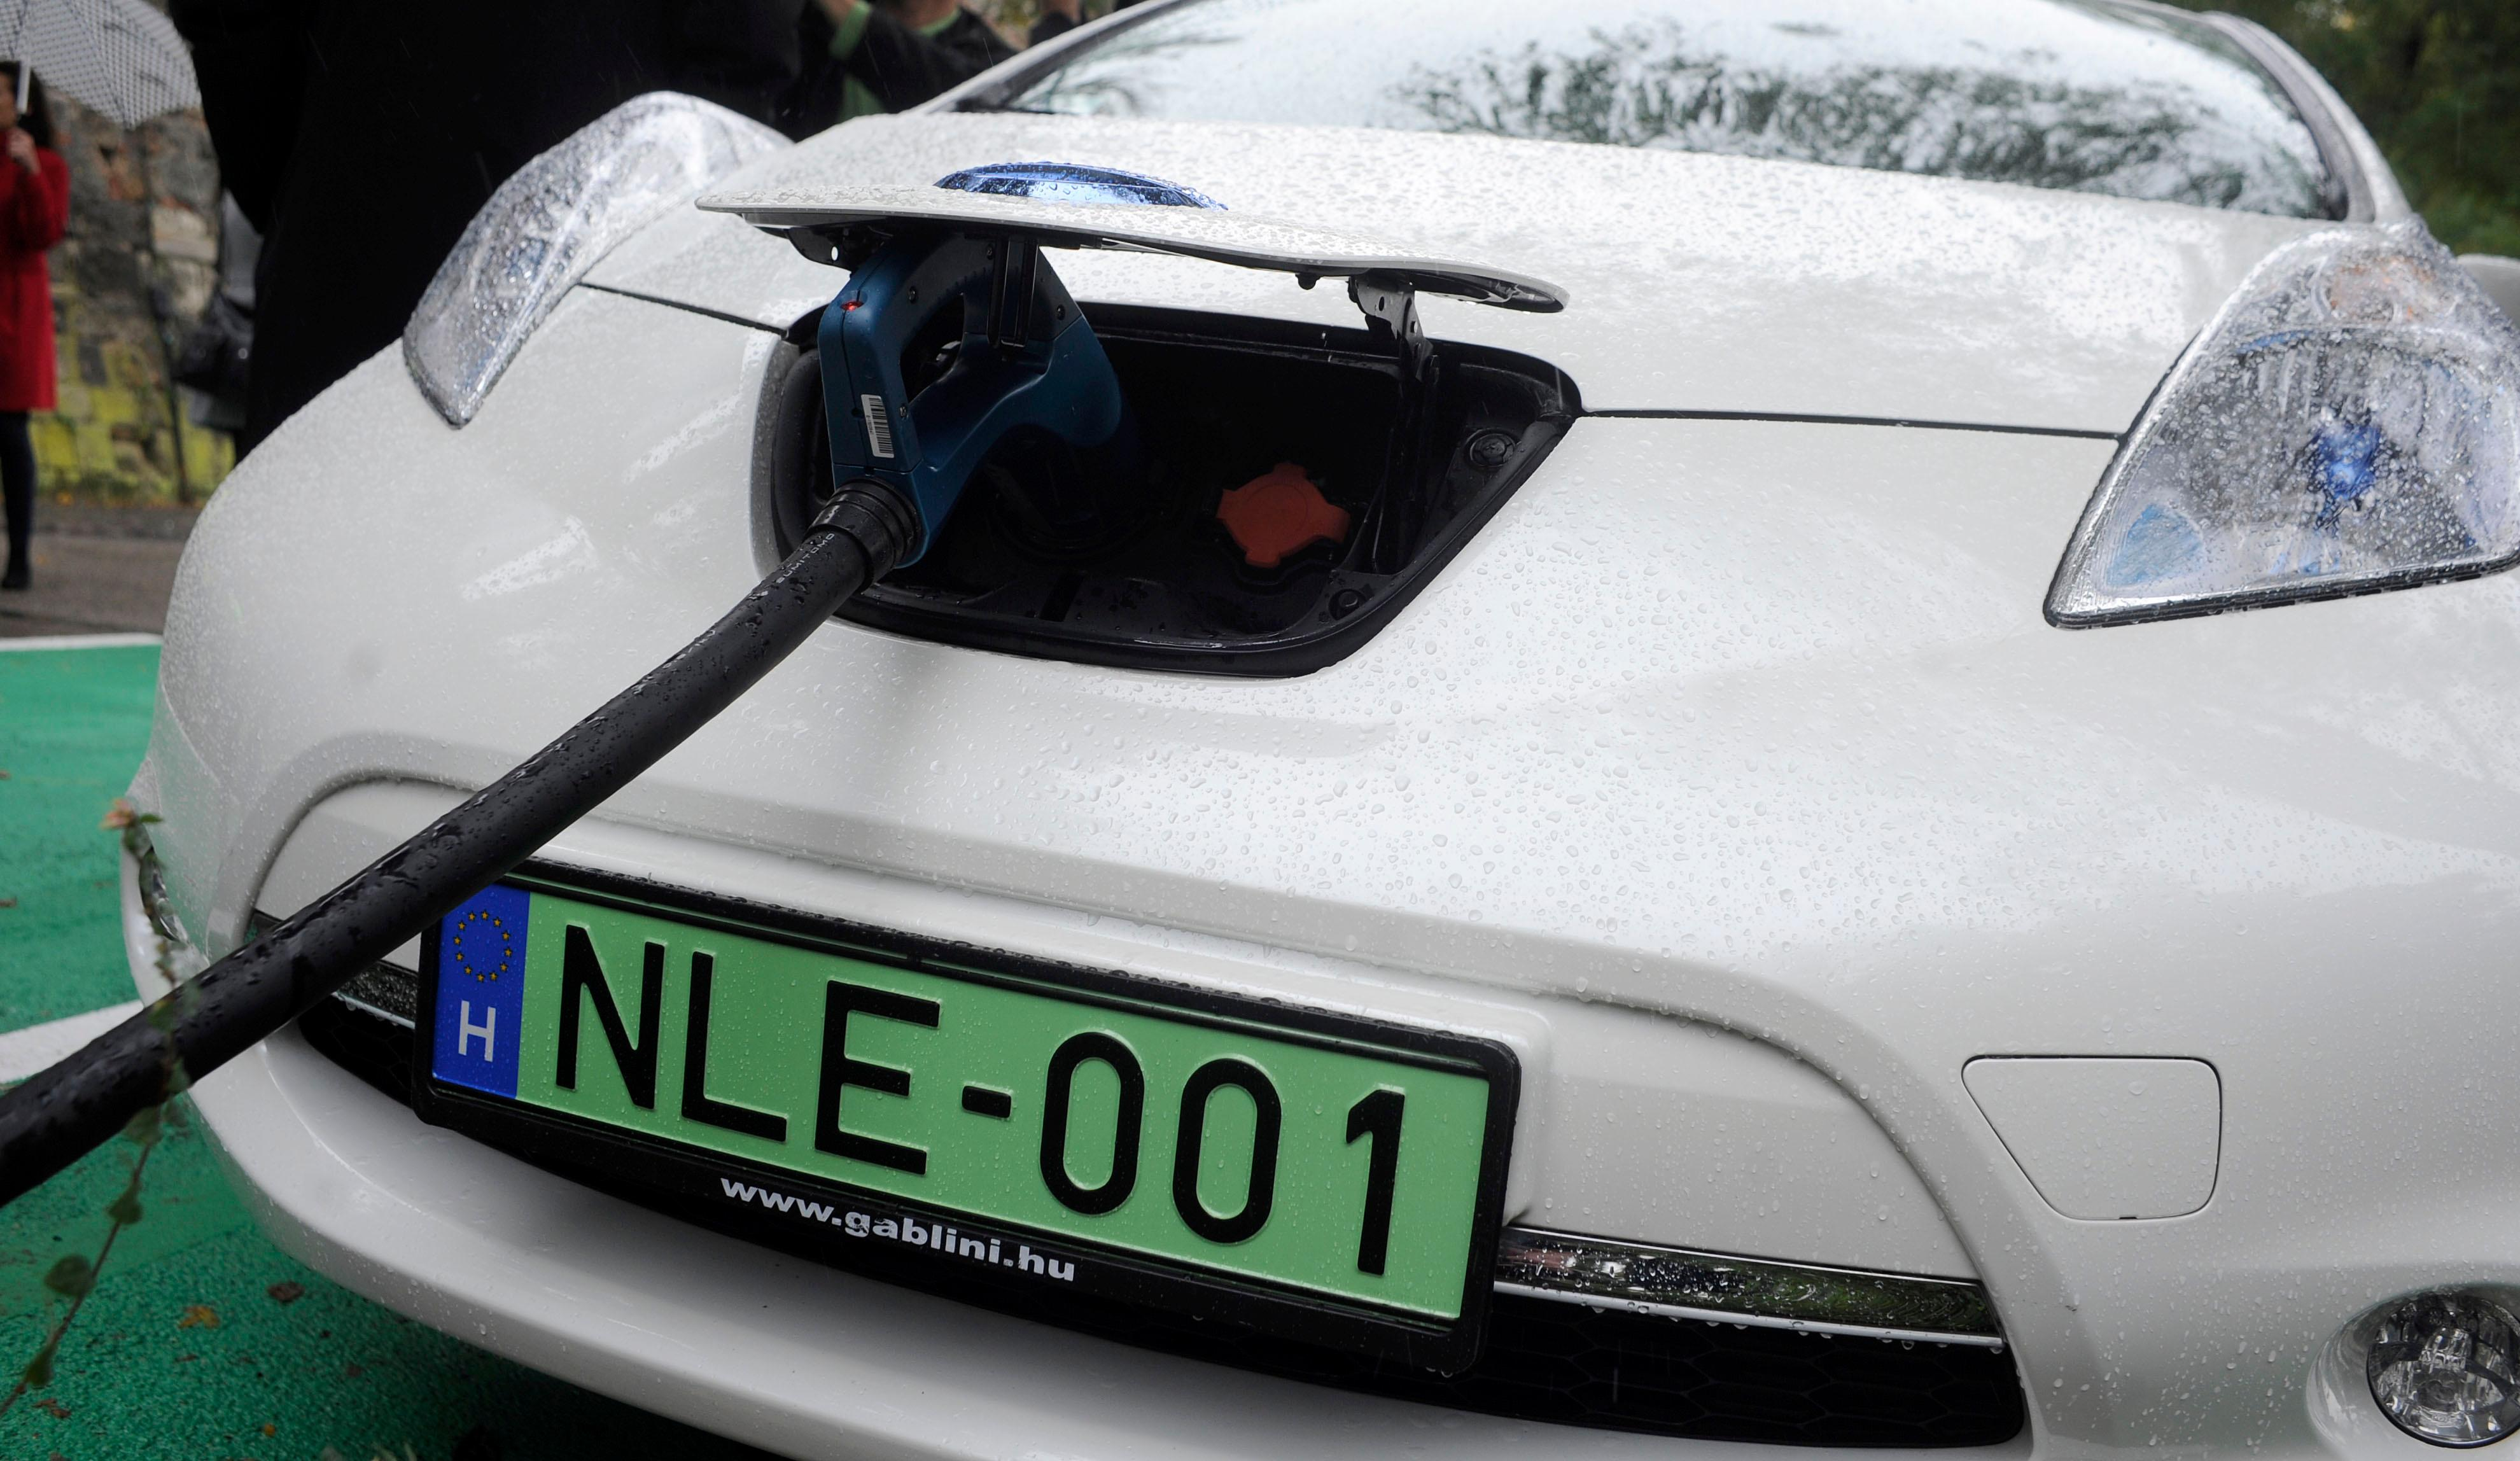 Nearly 600 Green Licence Plates Registered In Six Months